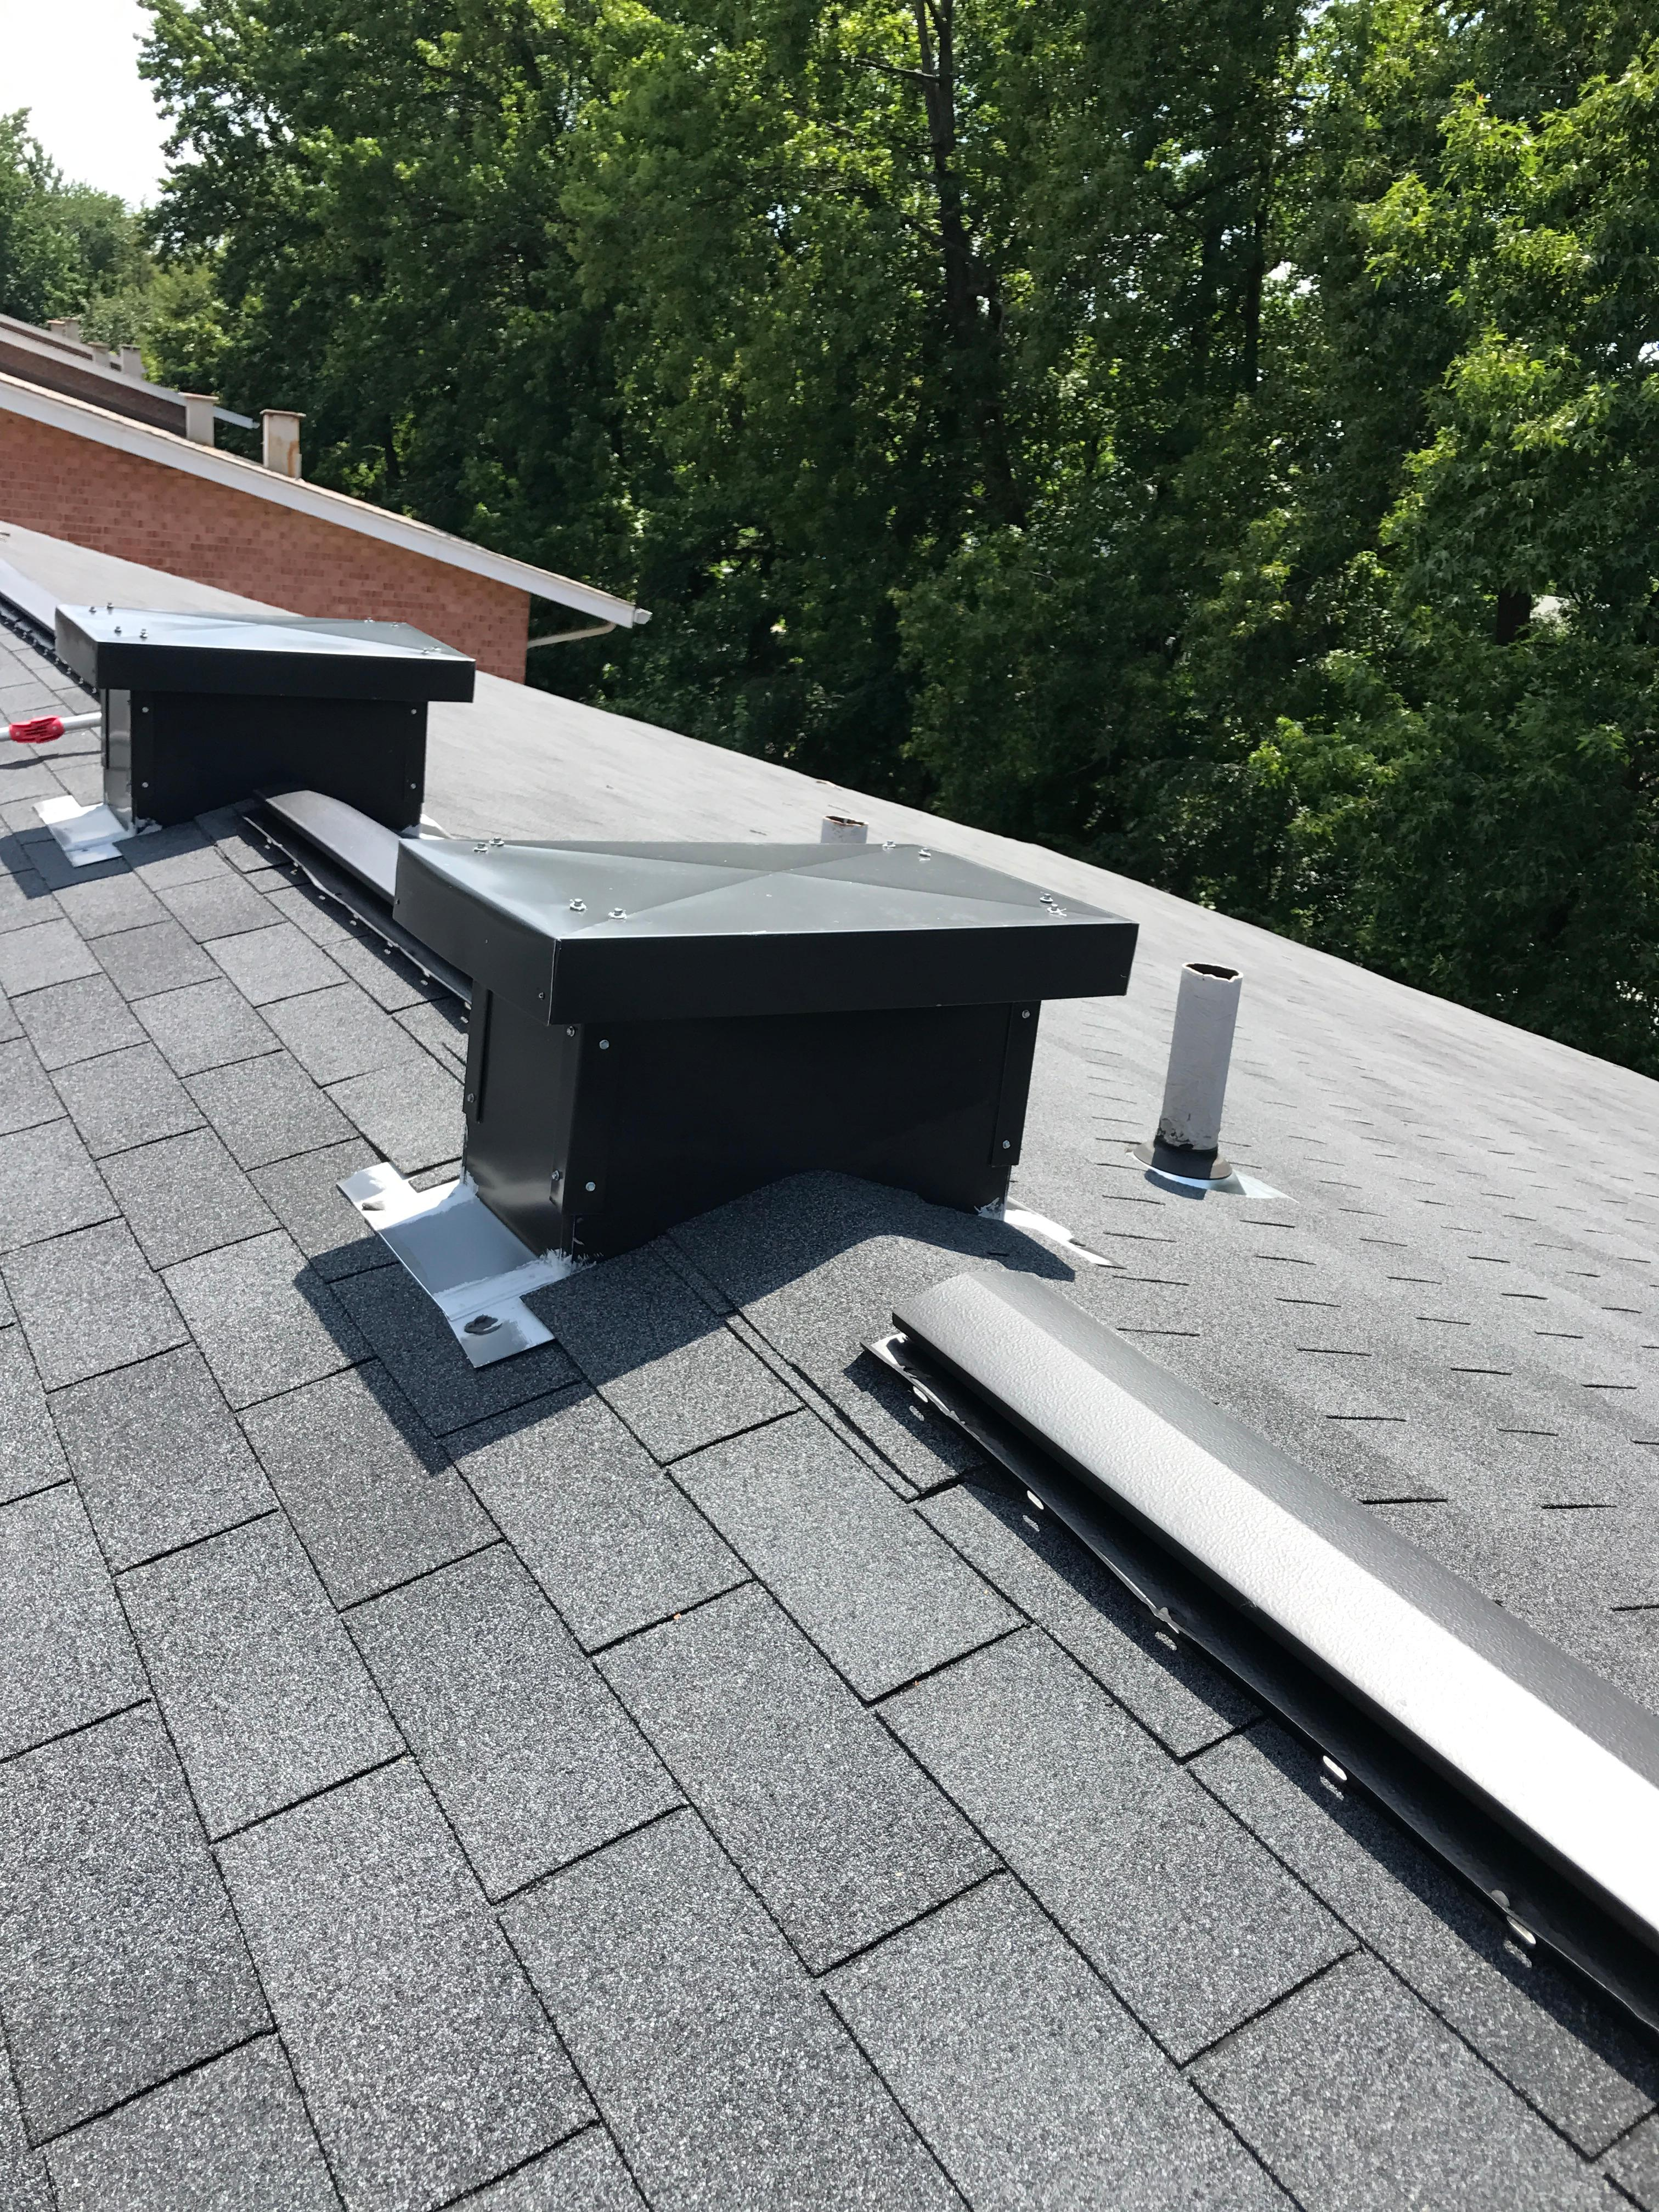 Politz Enterprises Roofing Inc. image 4